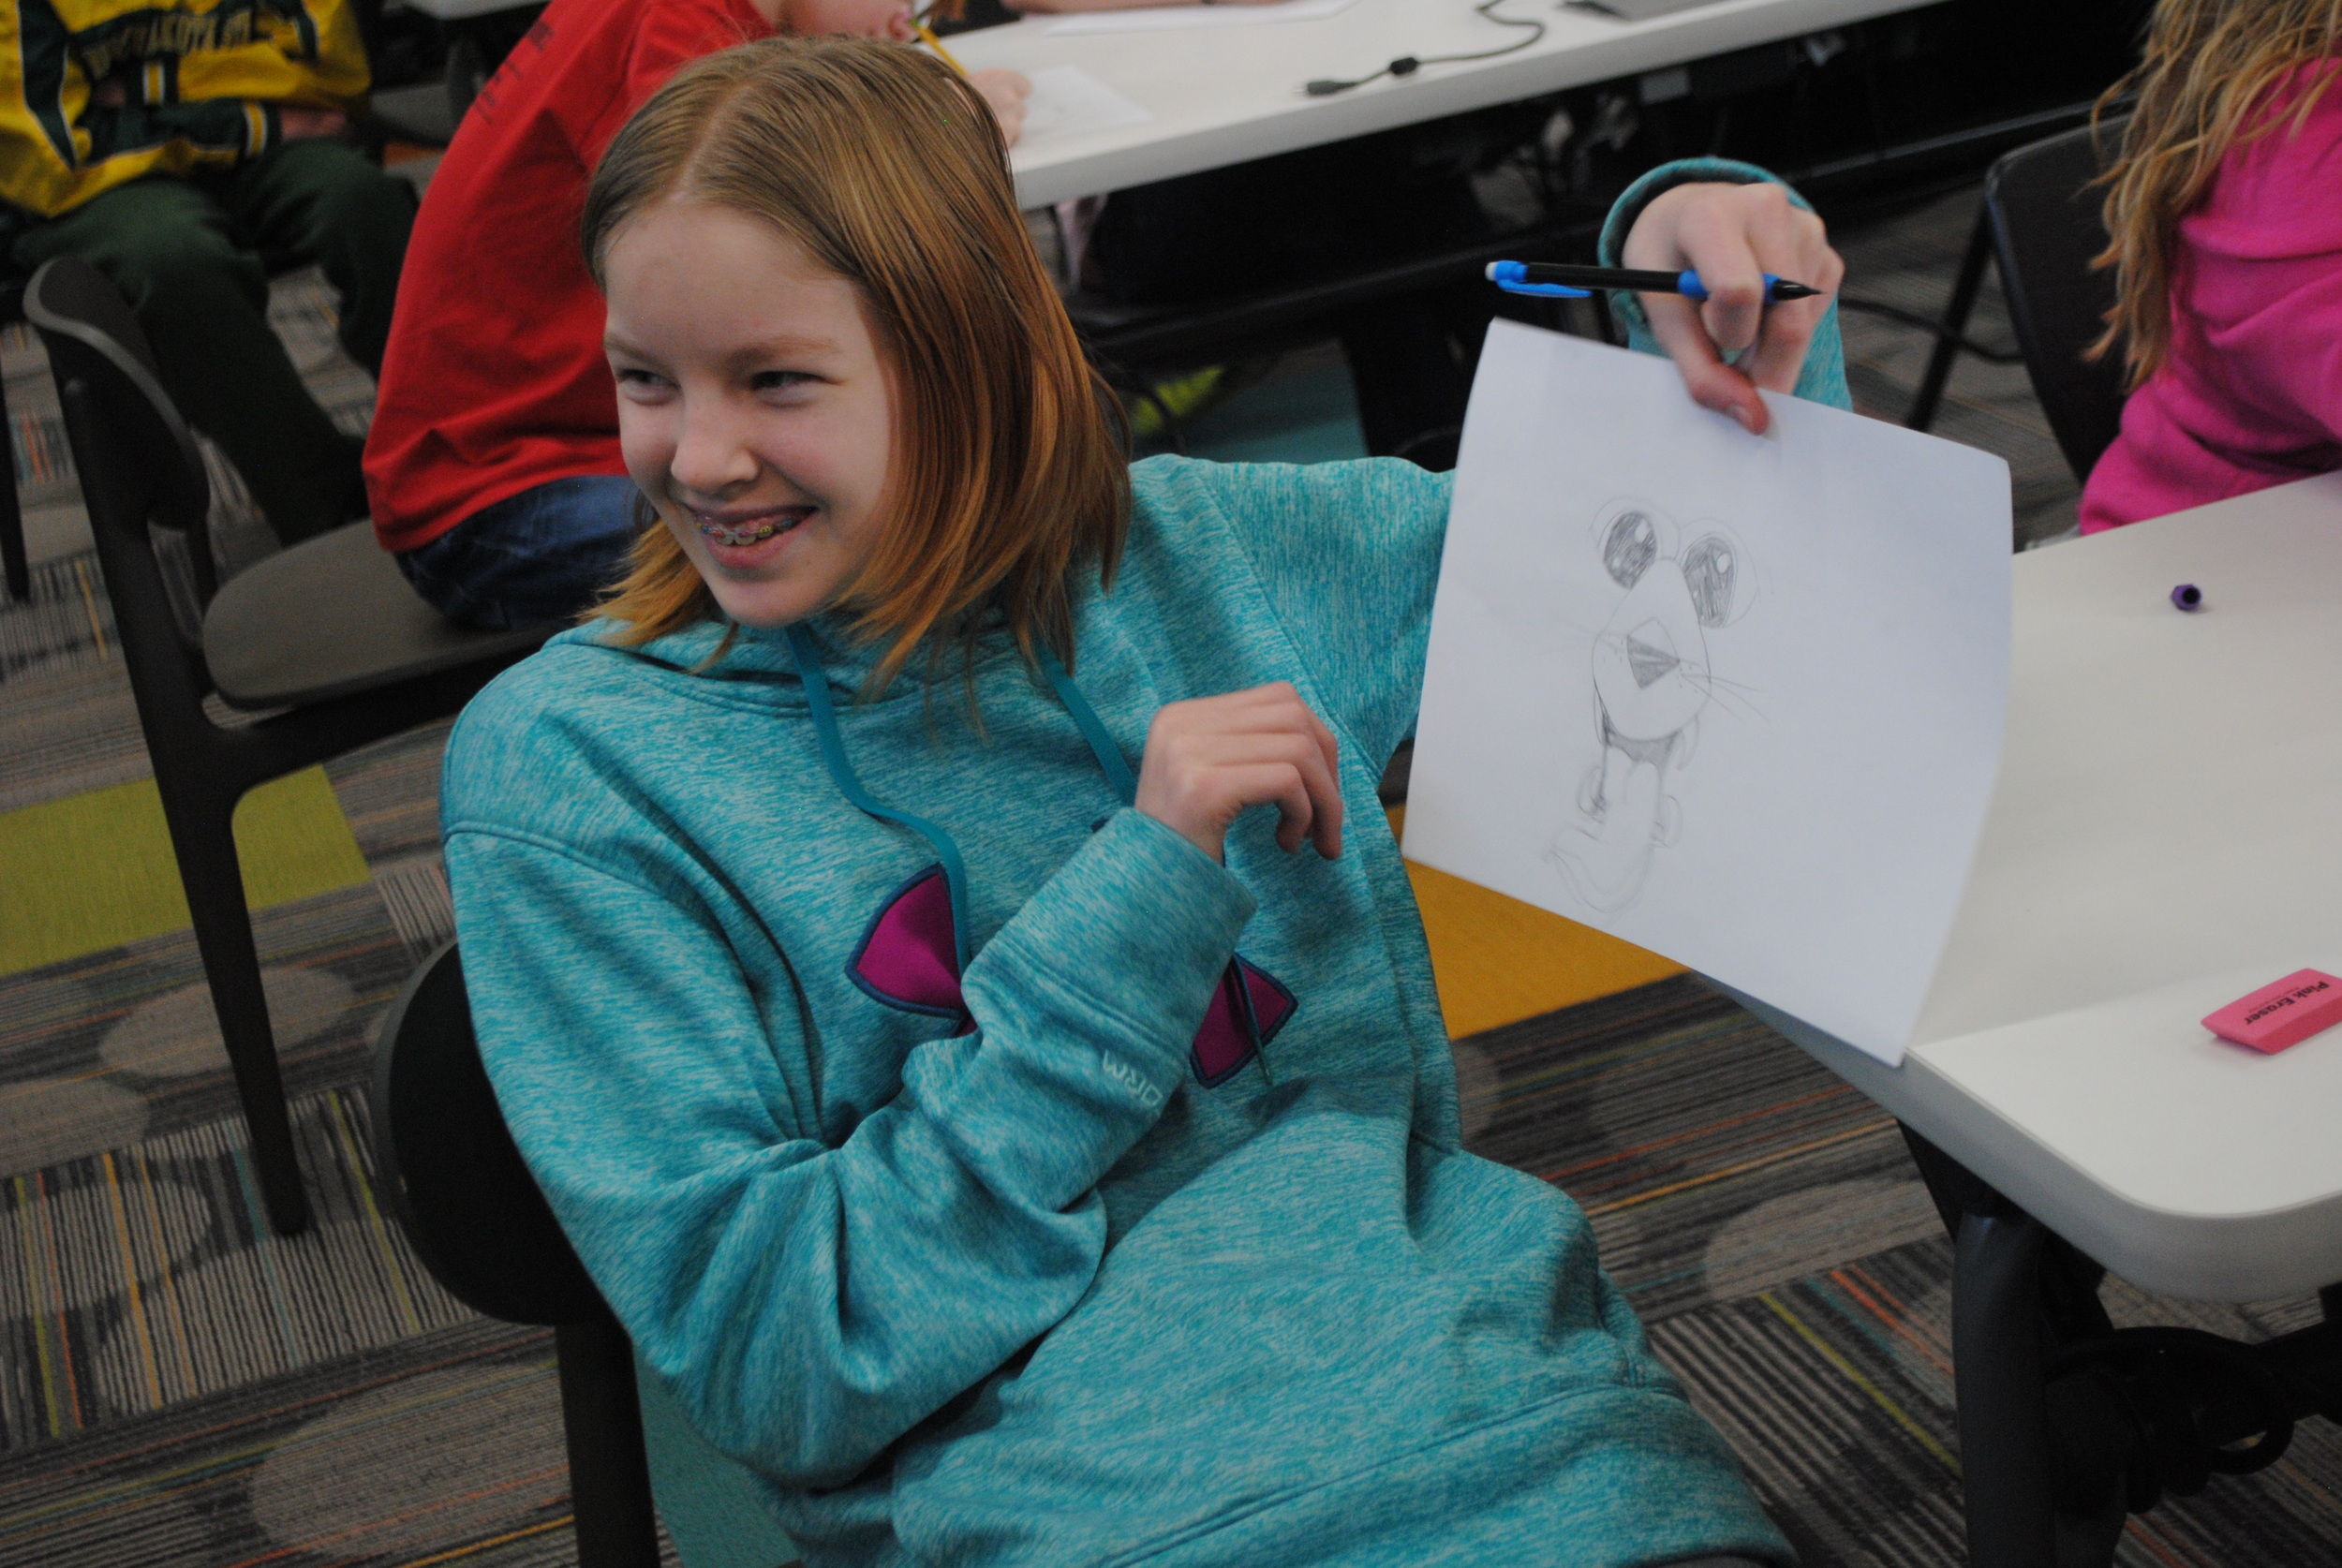 Students had fun learning how to draw an animal cartoon character, thanks to Harbo's step-by-step teaching instructions. Here, a smiling Victoria Heikkila shows a classmate her drawing during Harbo's presentation.